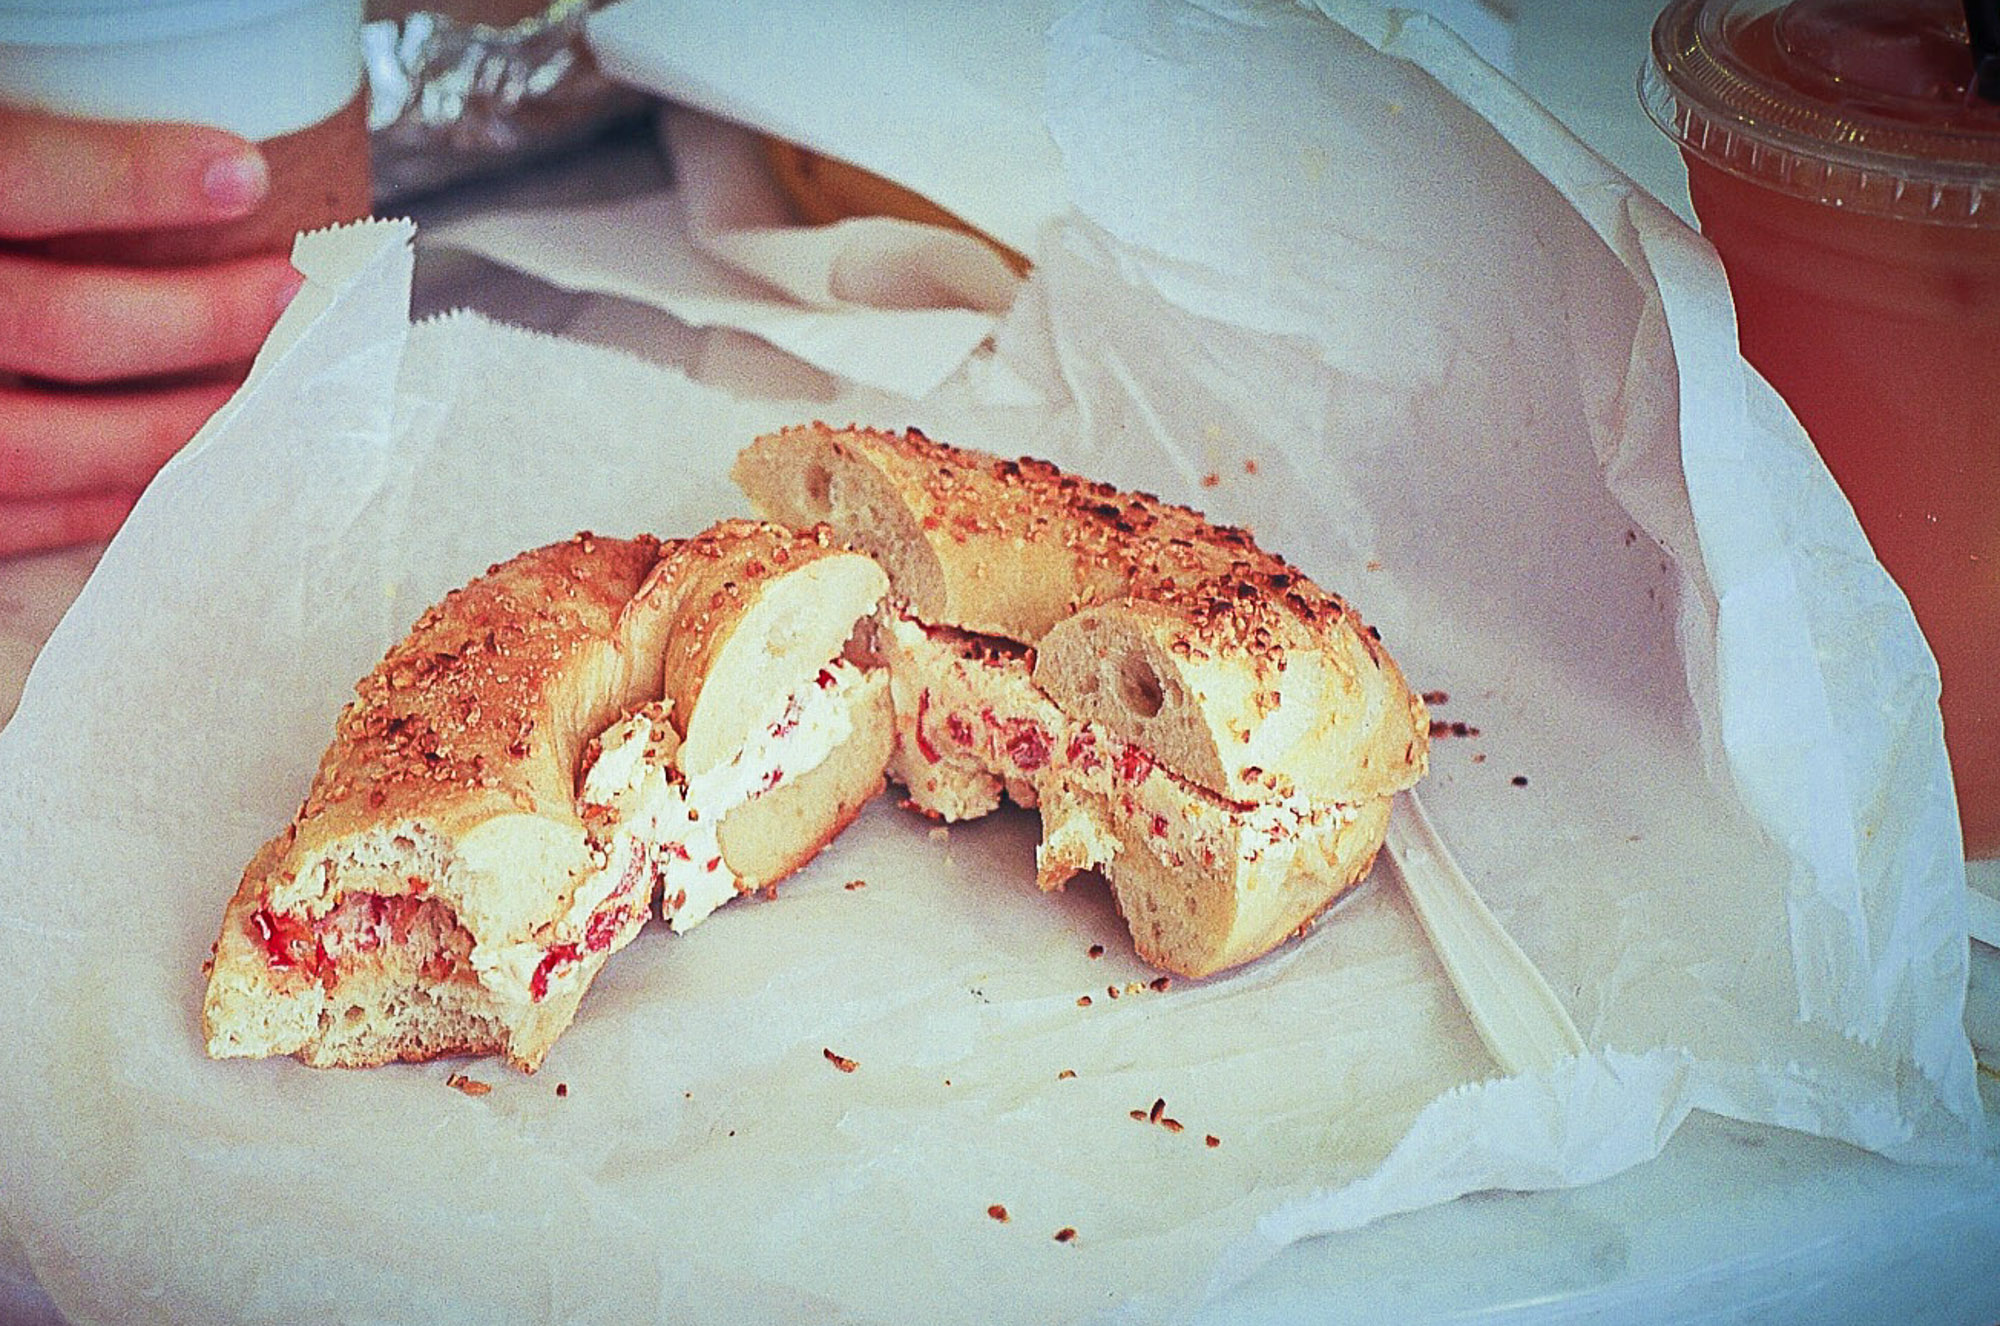 They took me to my 1st New York bagel.